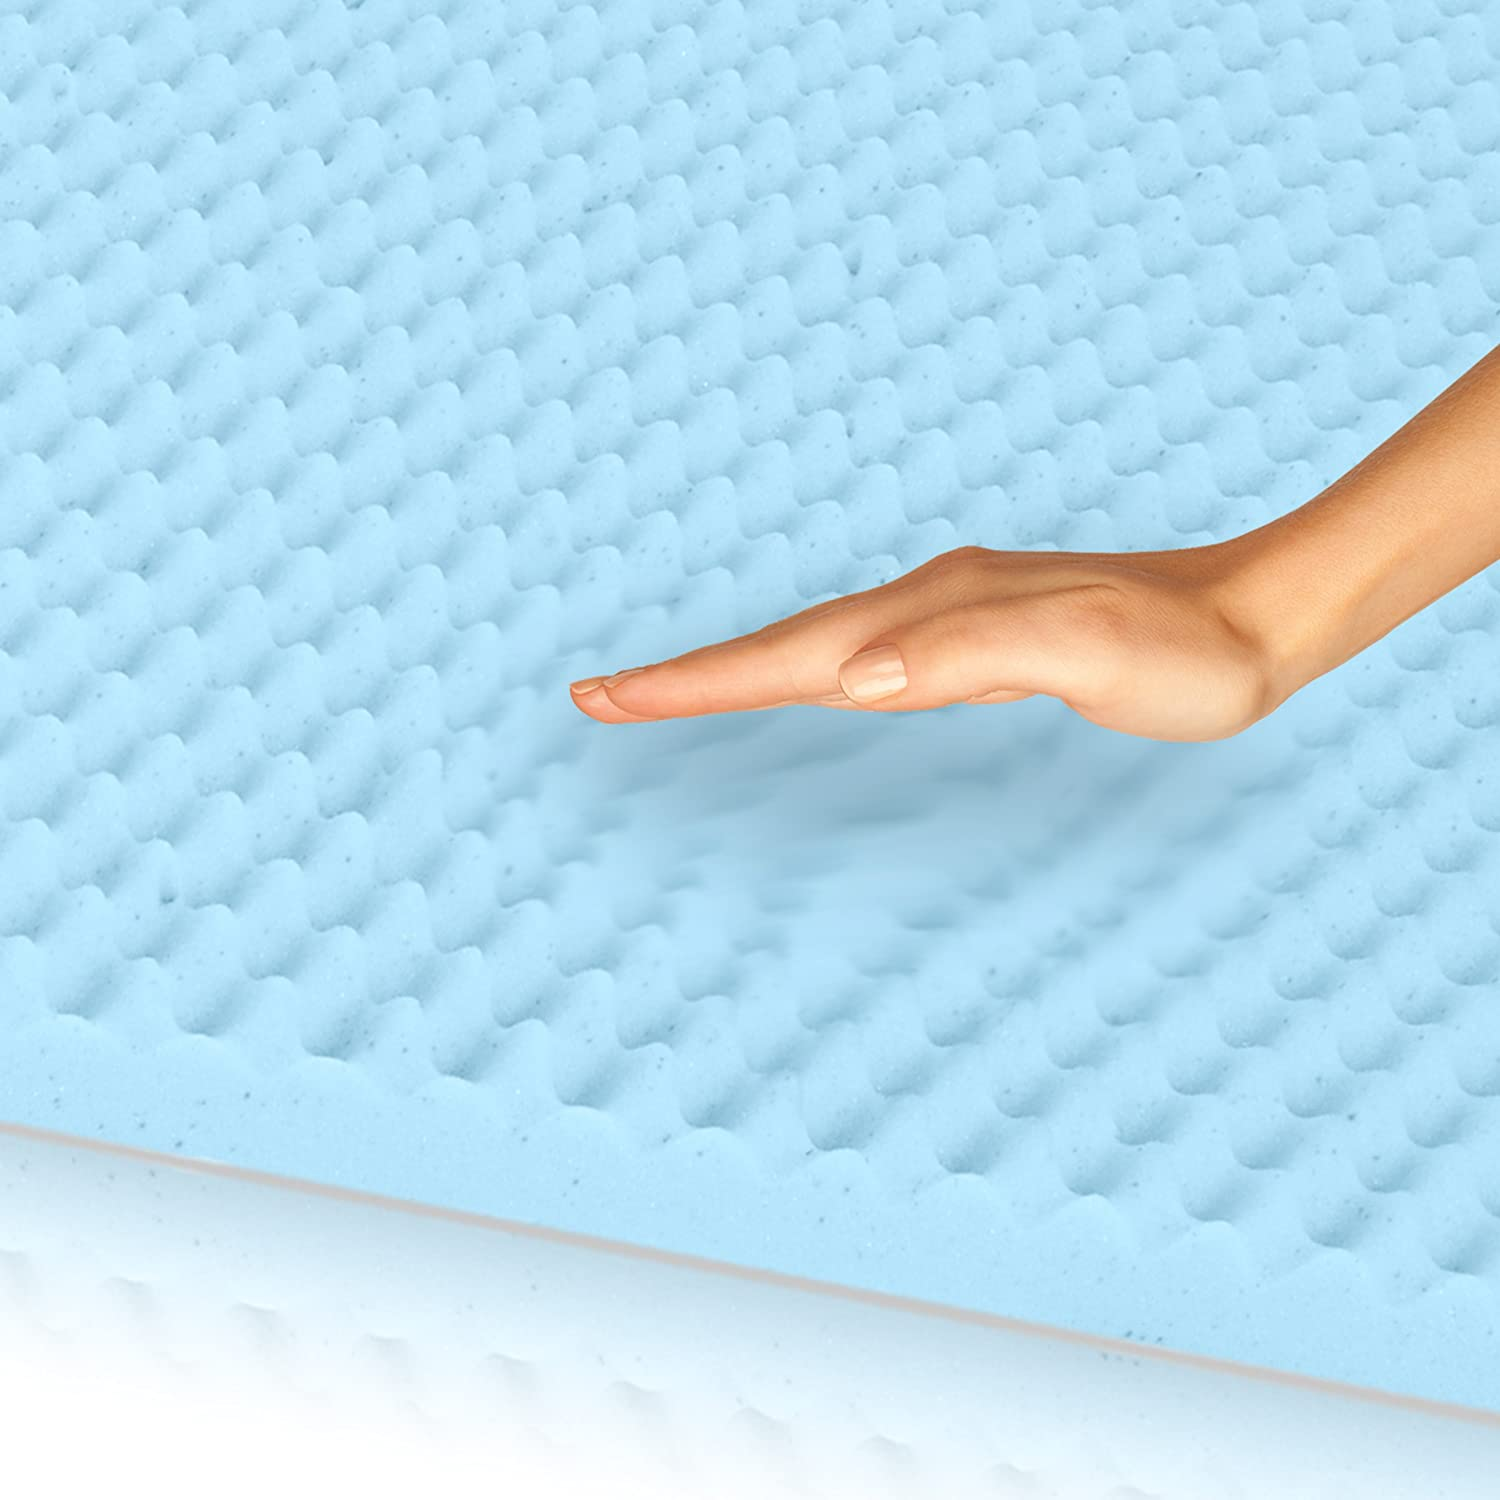 Egg Crate Gel Memory Foam Mattress Topper - King, Mattress Pad Provides  Great Pressure Relief, Gel Infusion Contributes to a Cooler Night Sleep ( King): ...